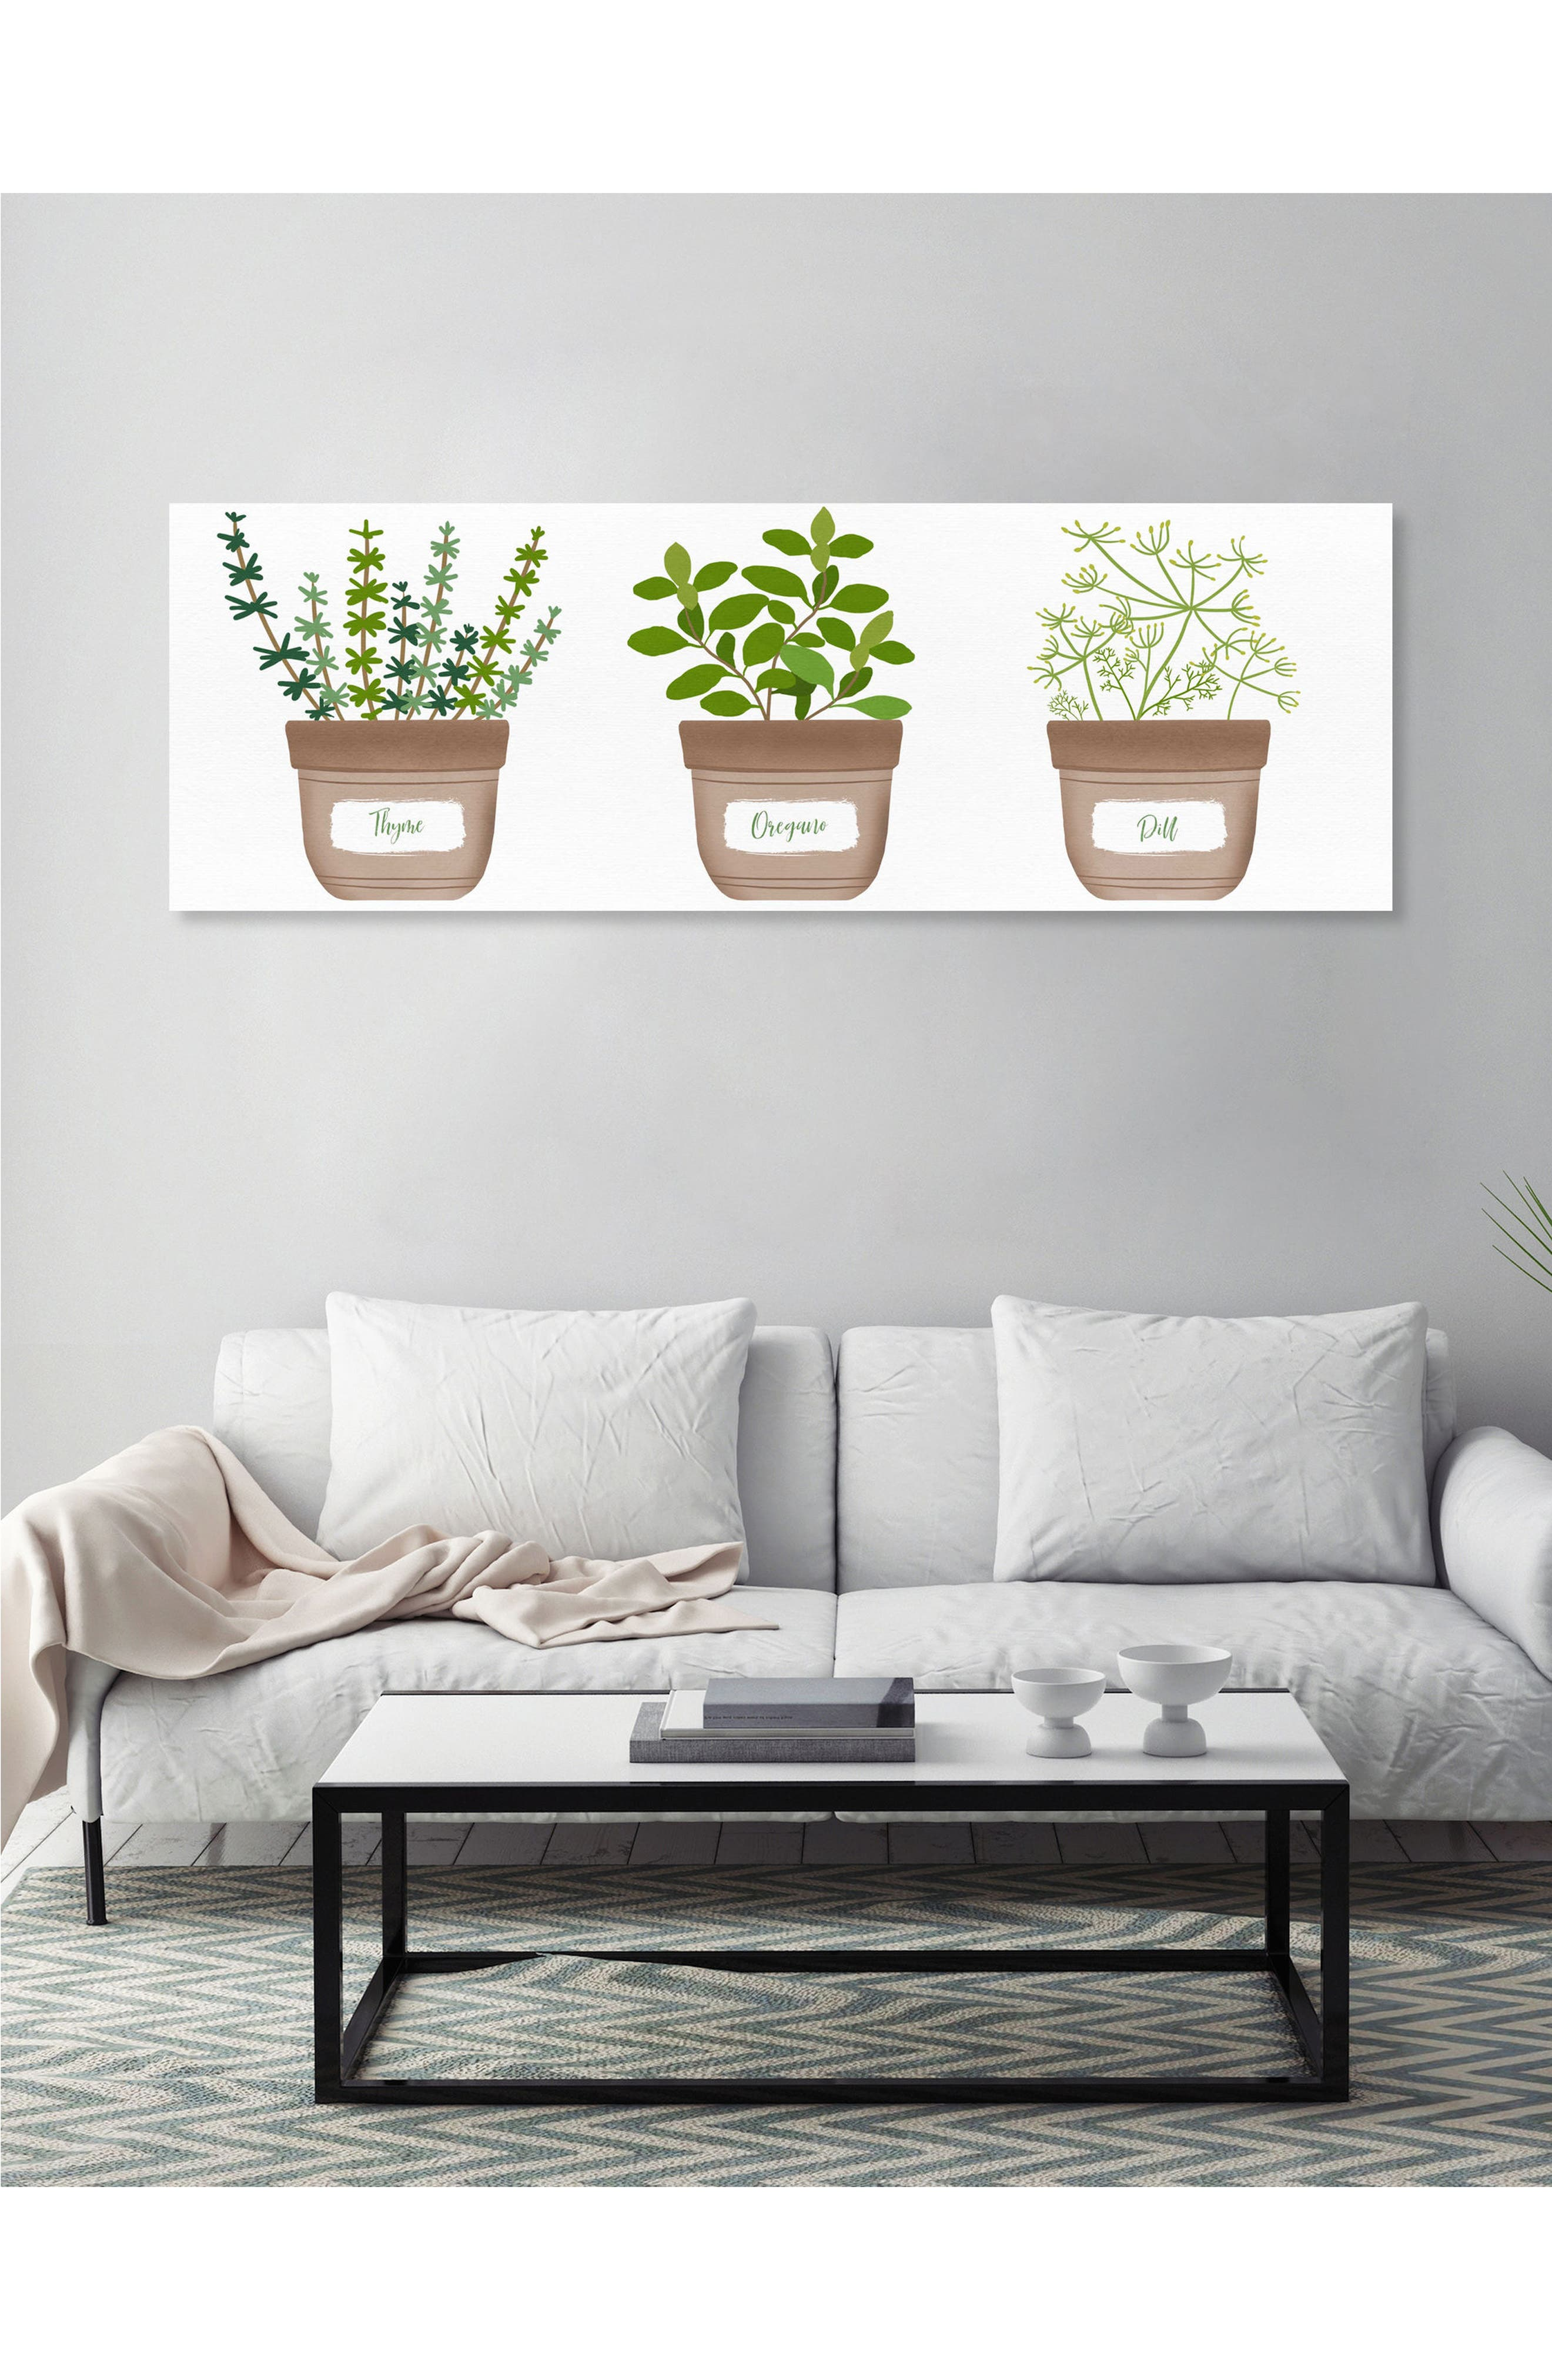 Herbs II Canvas Wall Art,                             Alternate thumbnail 2, color,                             GREEN